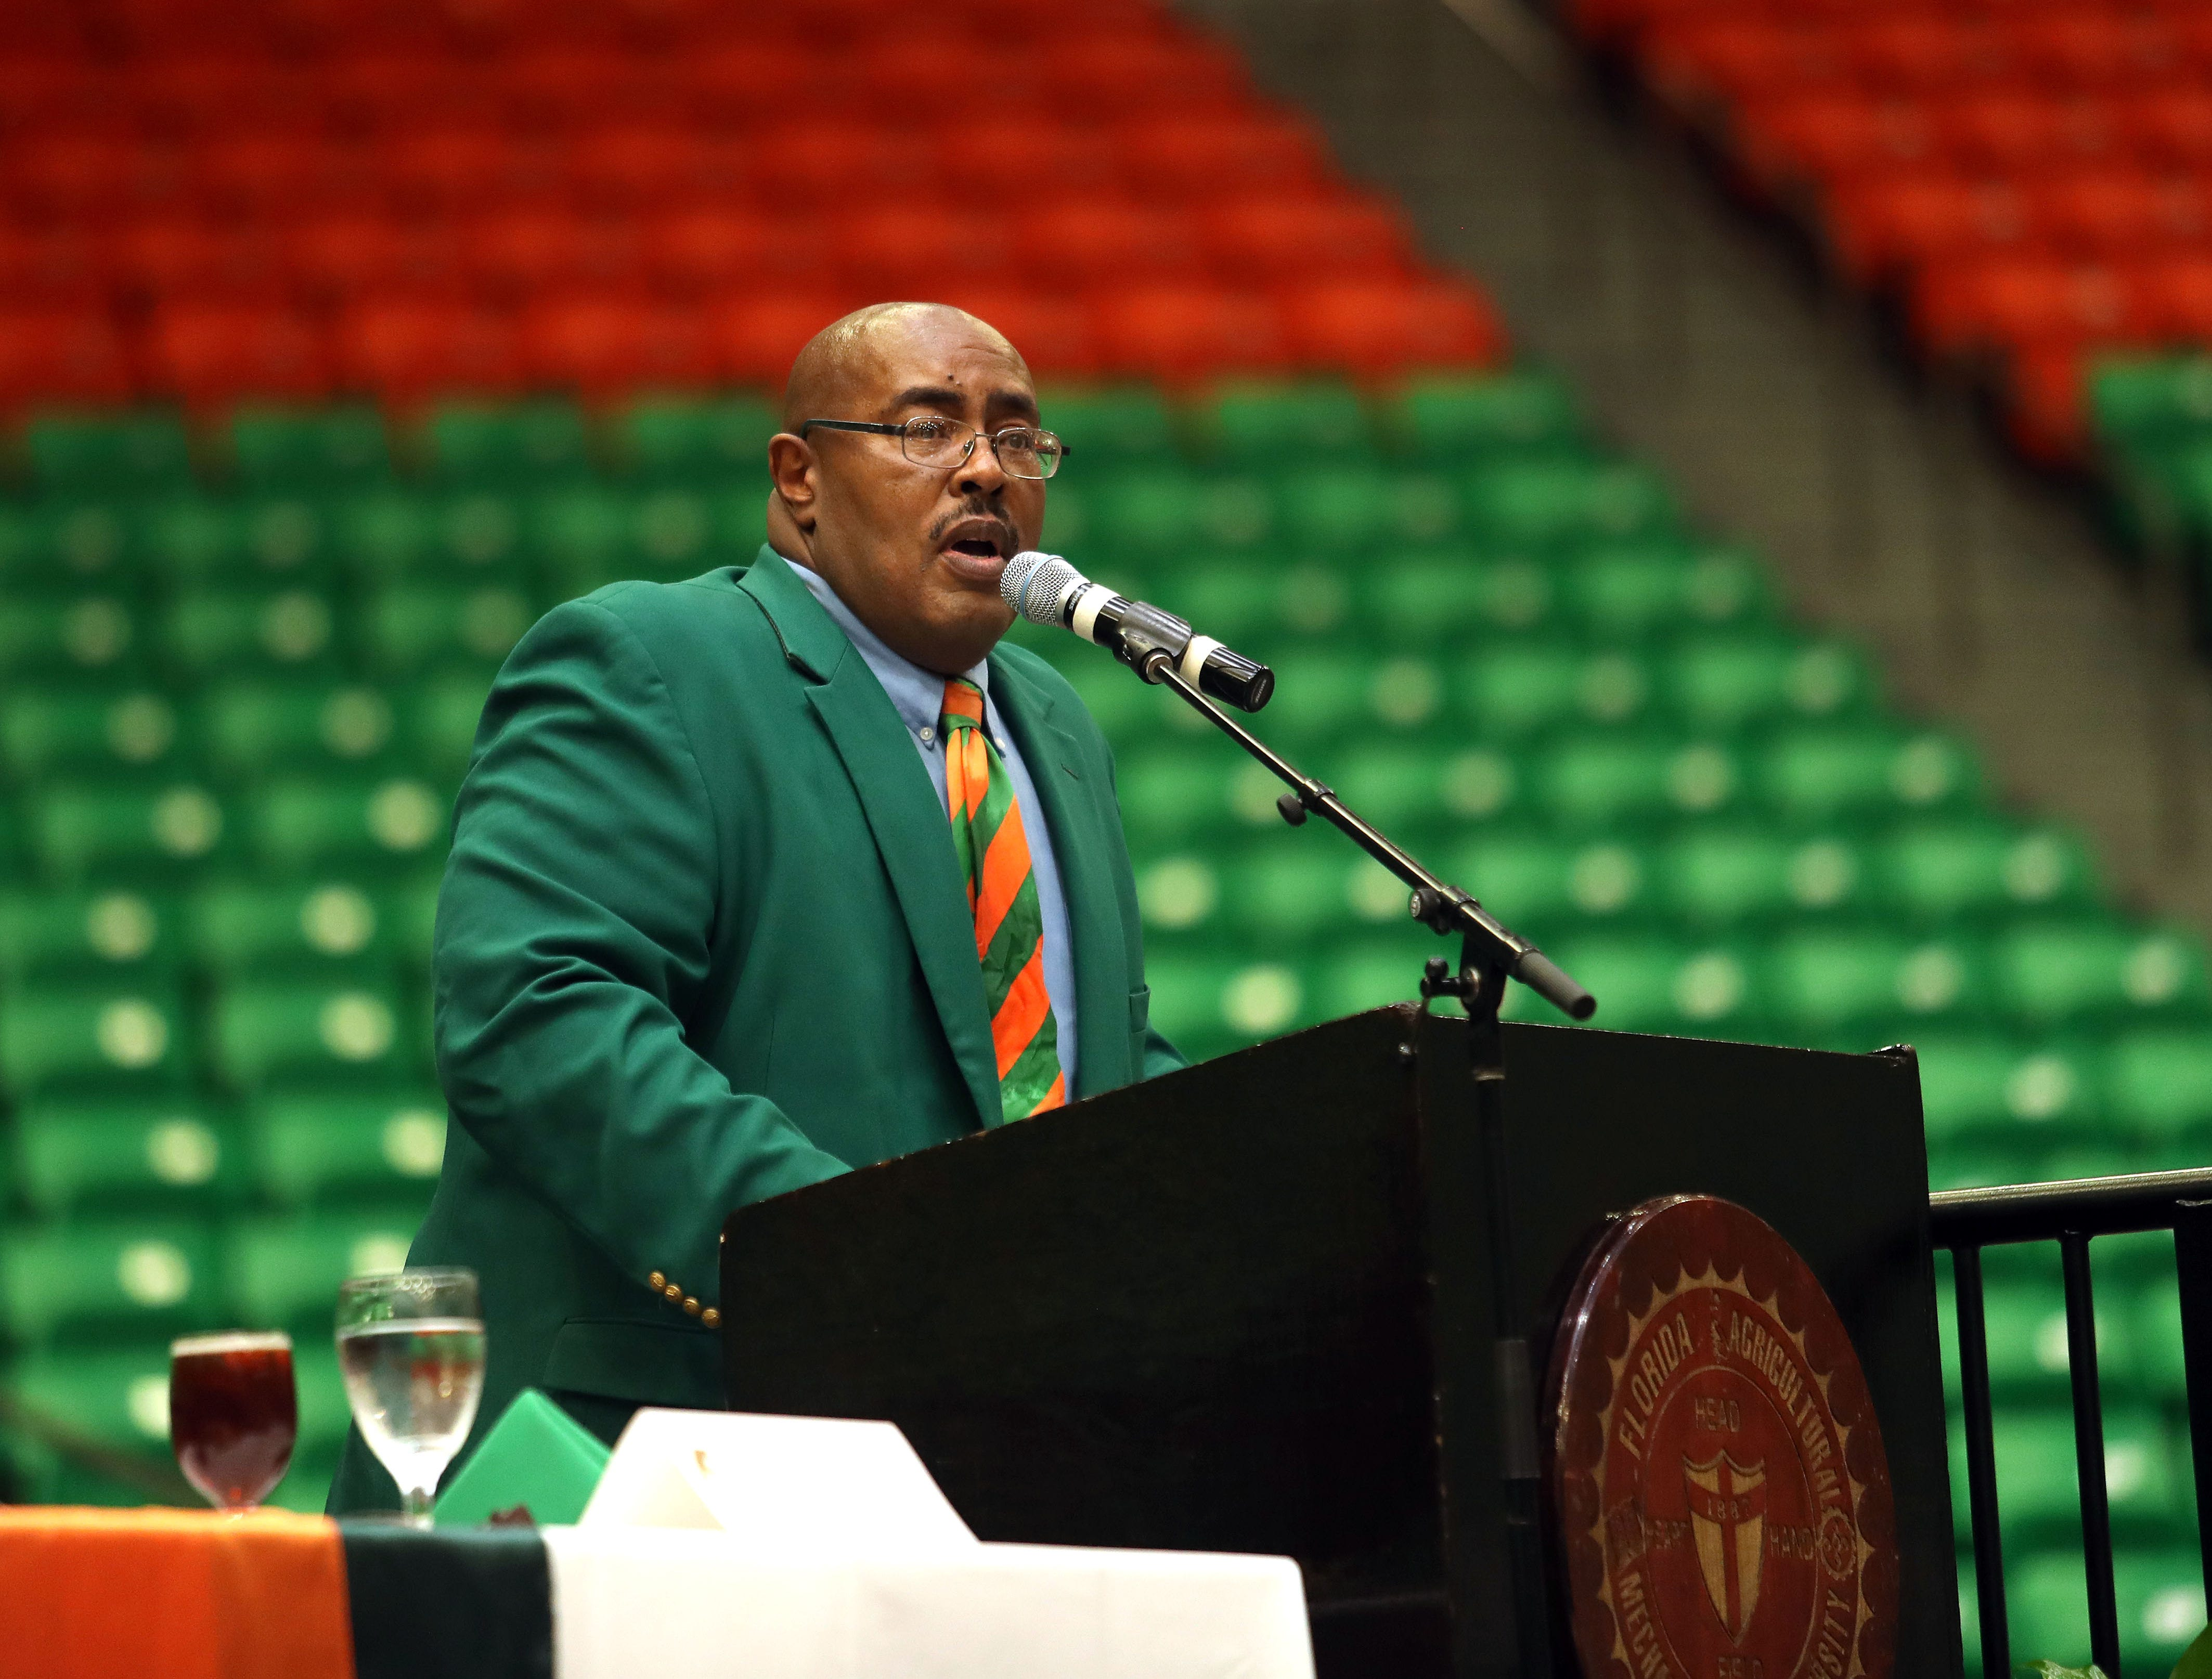 Alvin Hollins addresses the audience at the FAMU Sports Hall of Fame ceremony. Hollins is the chairman of the organization. He will be inducted in the MEAC Hall of Fame in 2019.